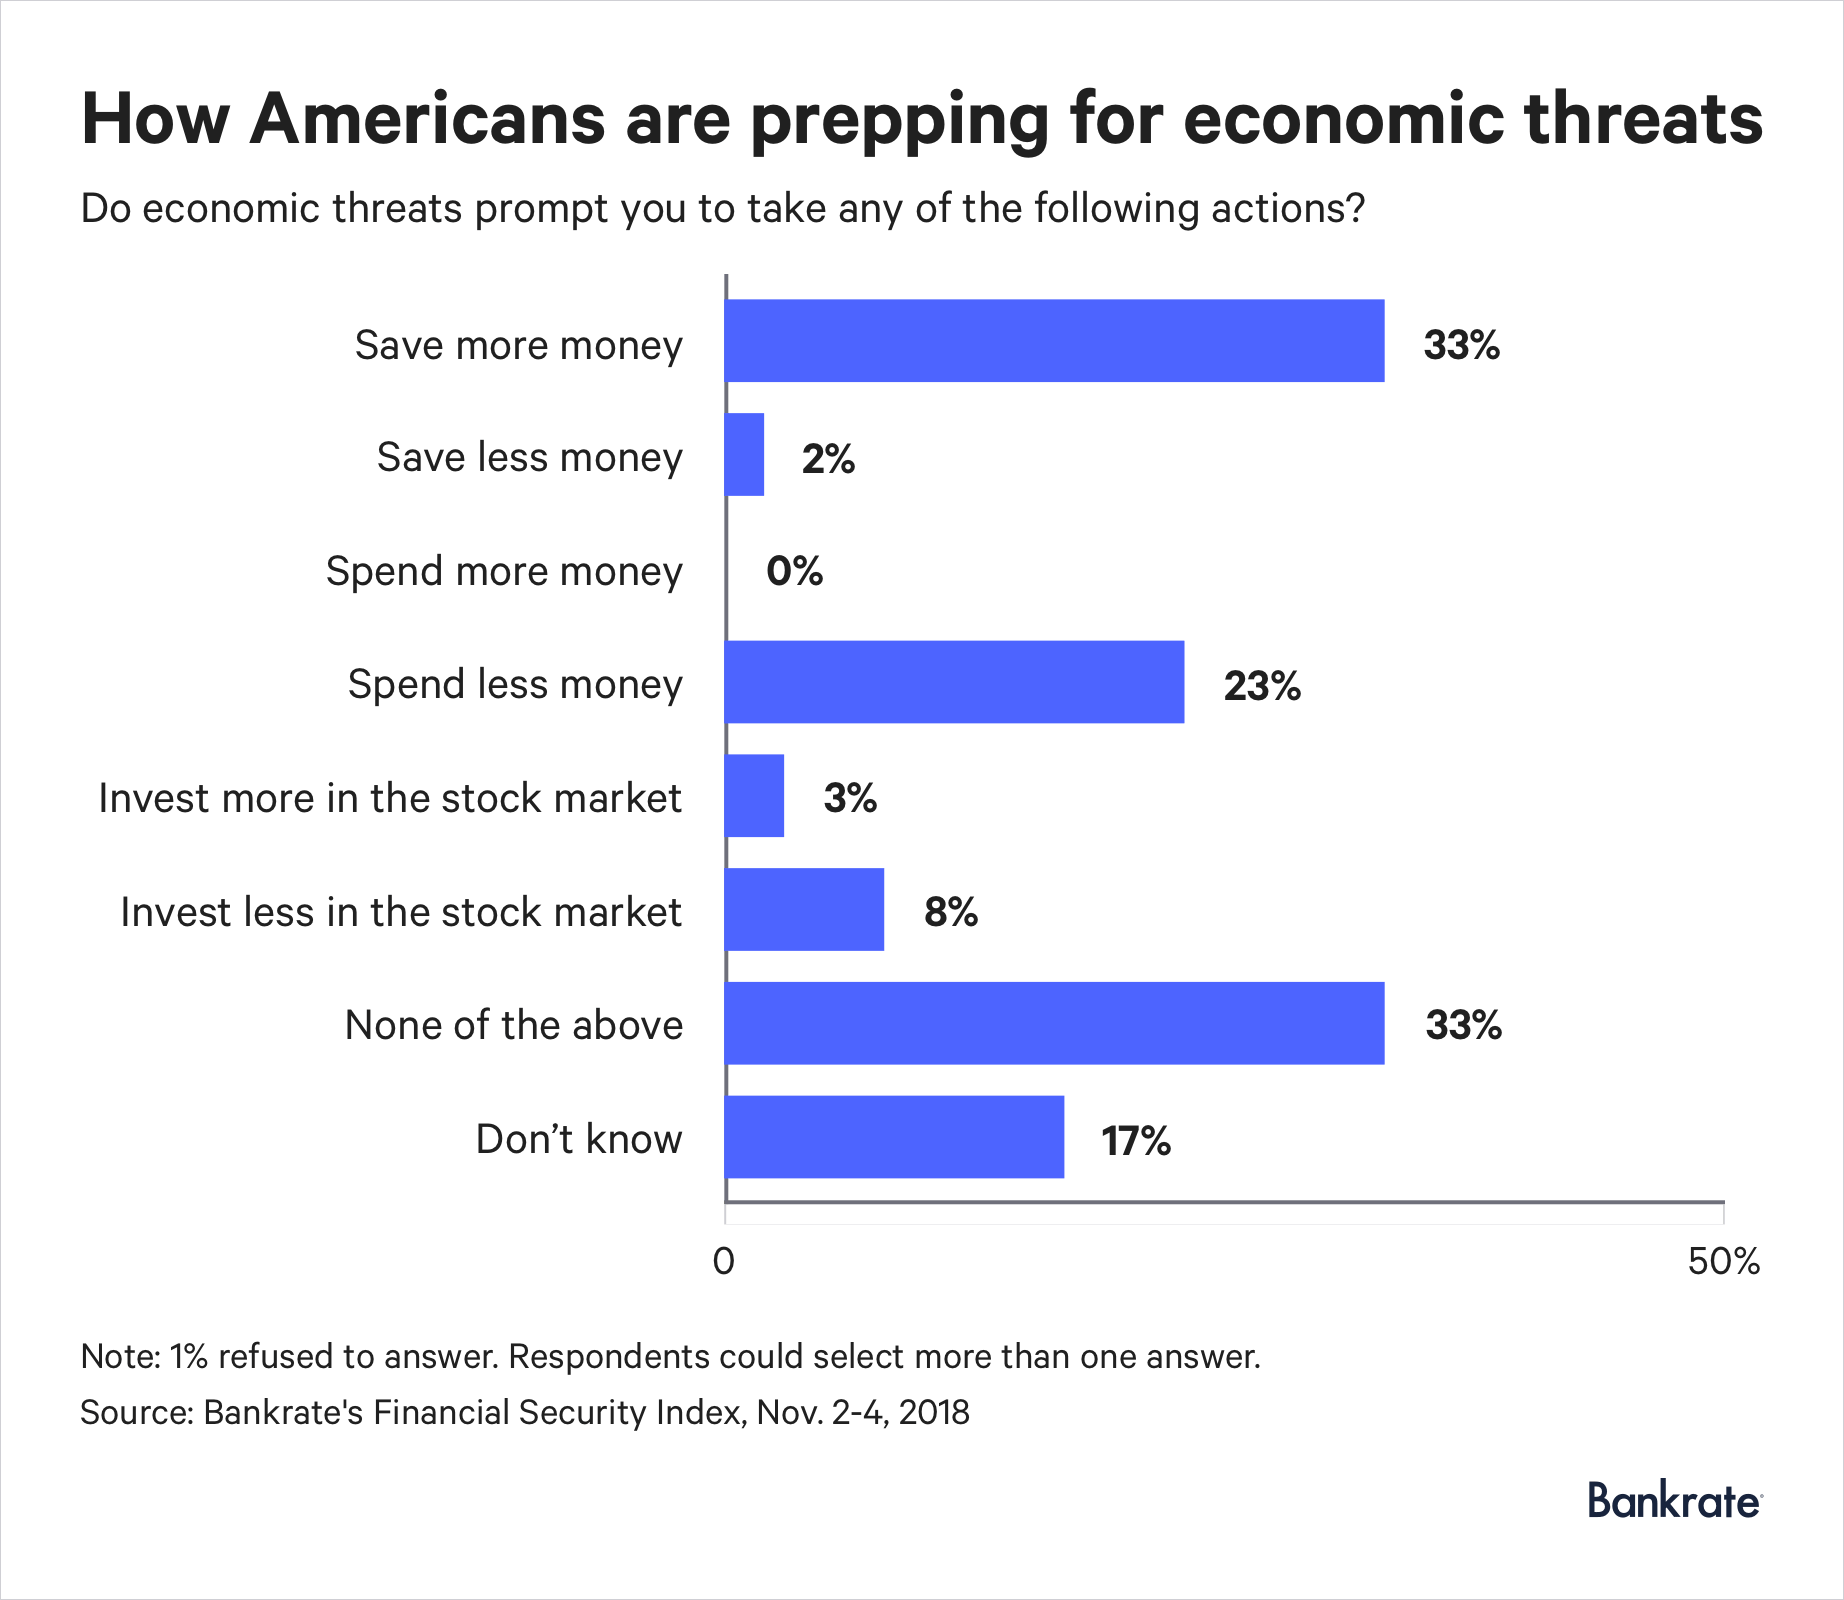 33% of Americans are planning to save more money